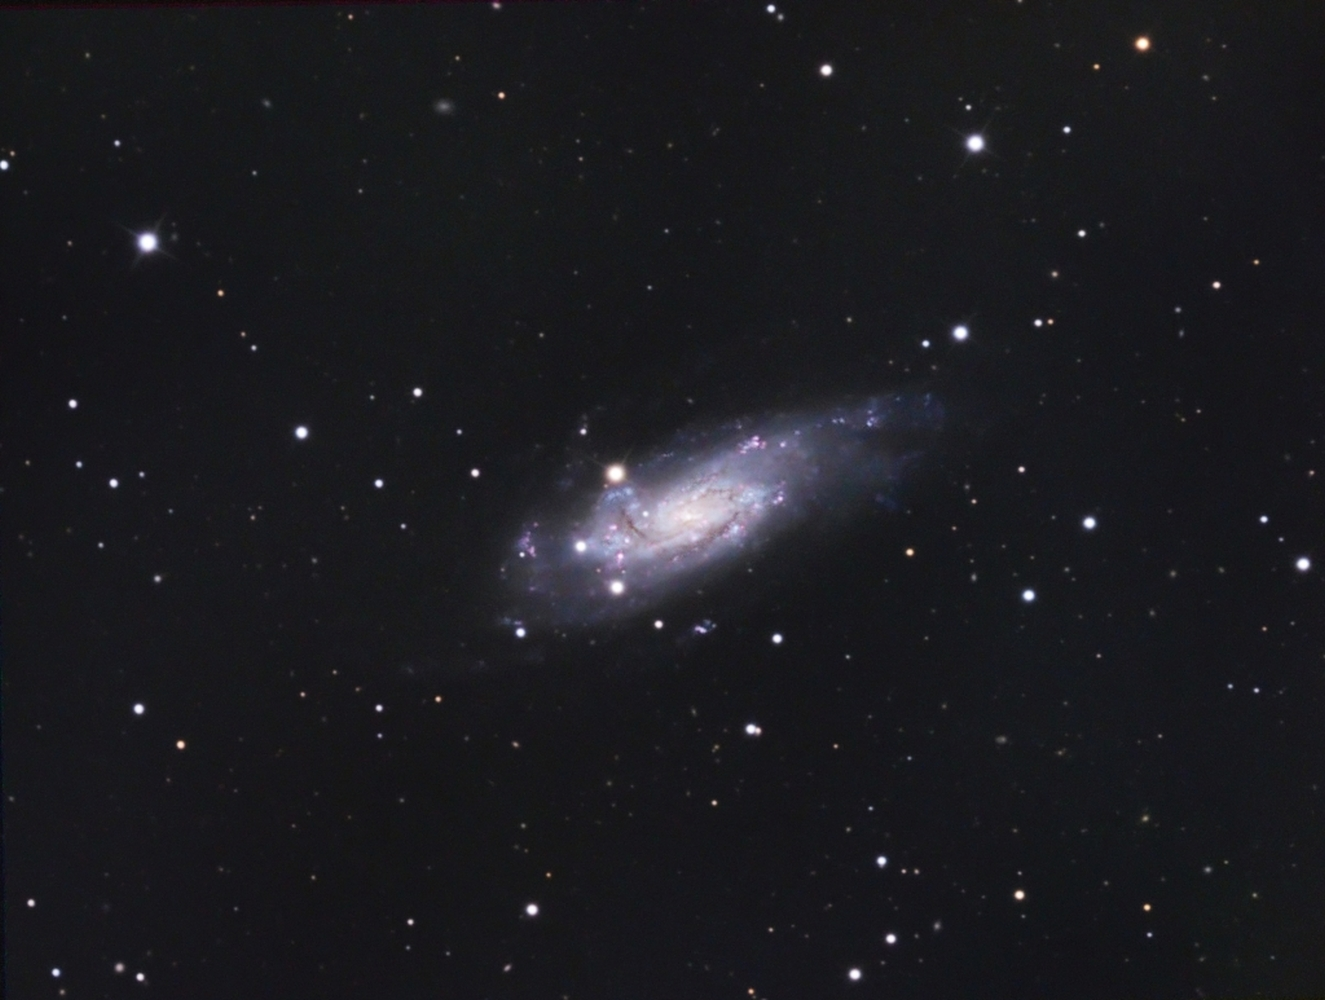 NGC 4559 from BMV Observatories